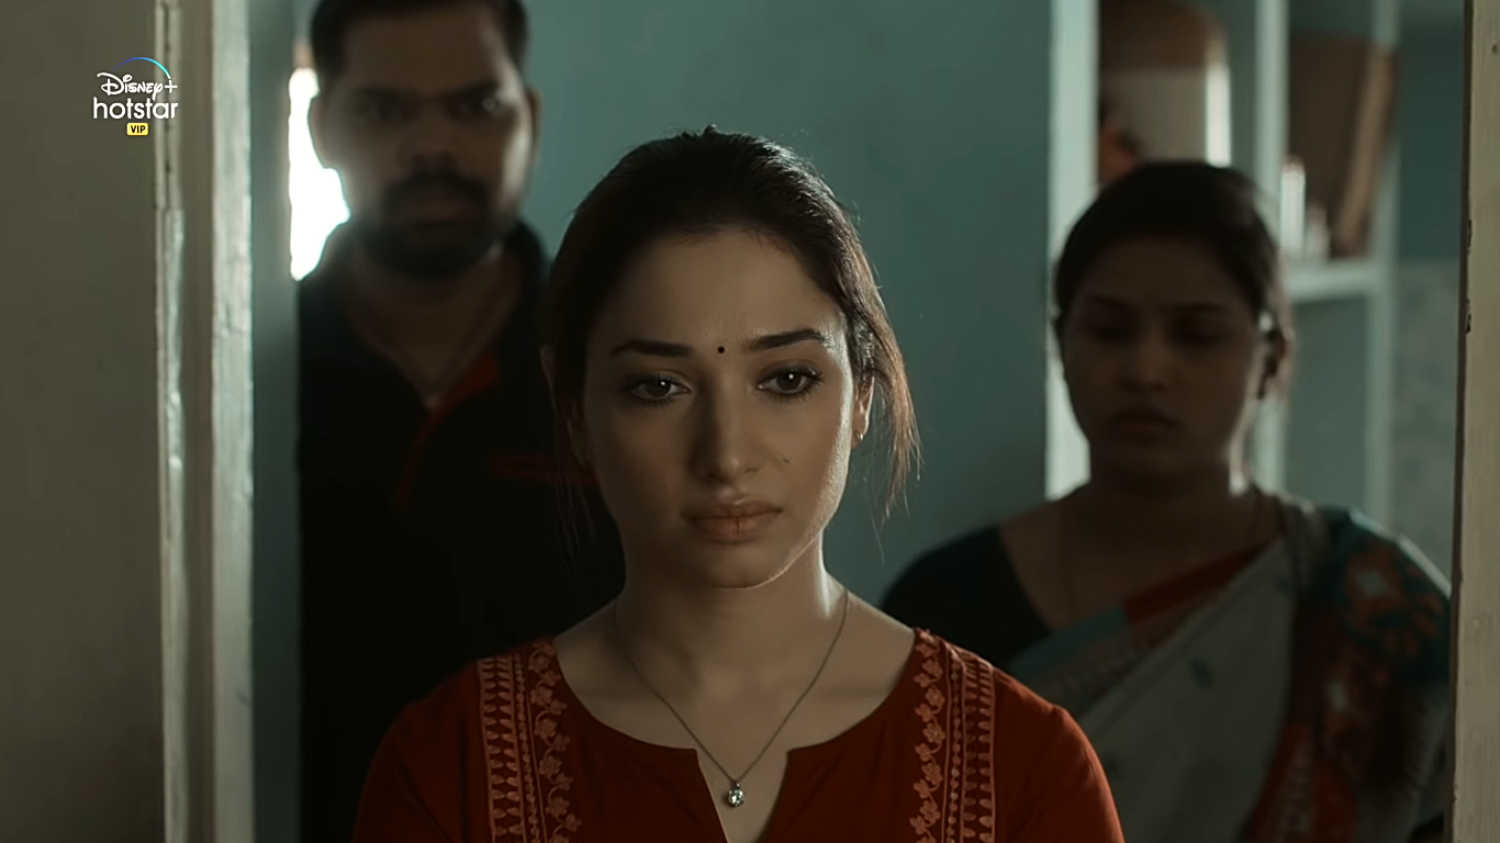 November Story trailer: Tamannaah has to prove her dad's innocence in this  investigative thriller